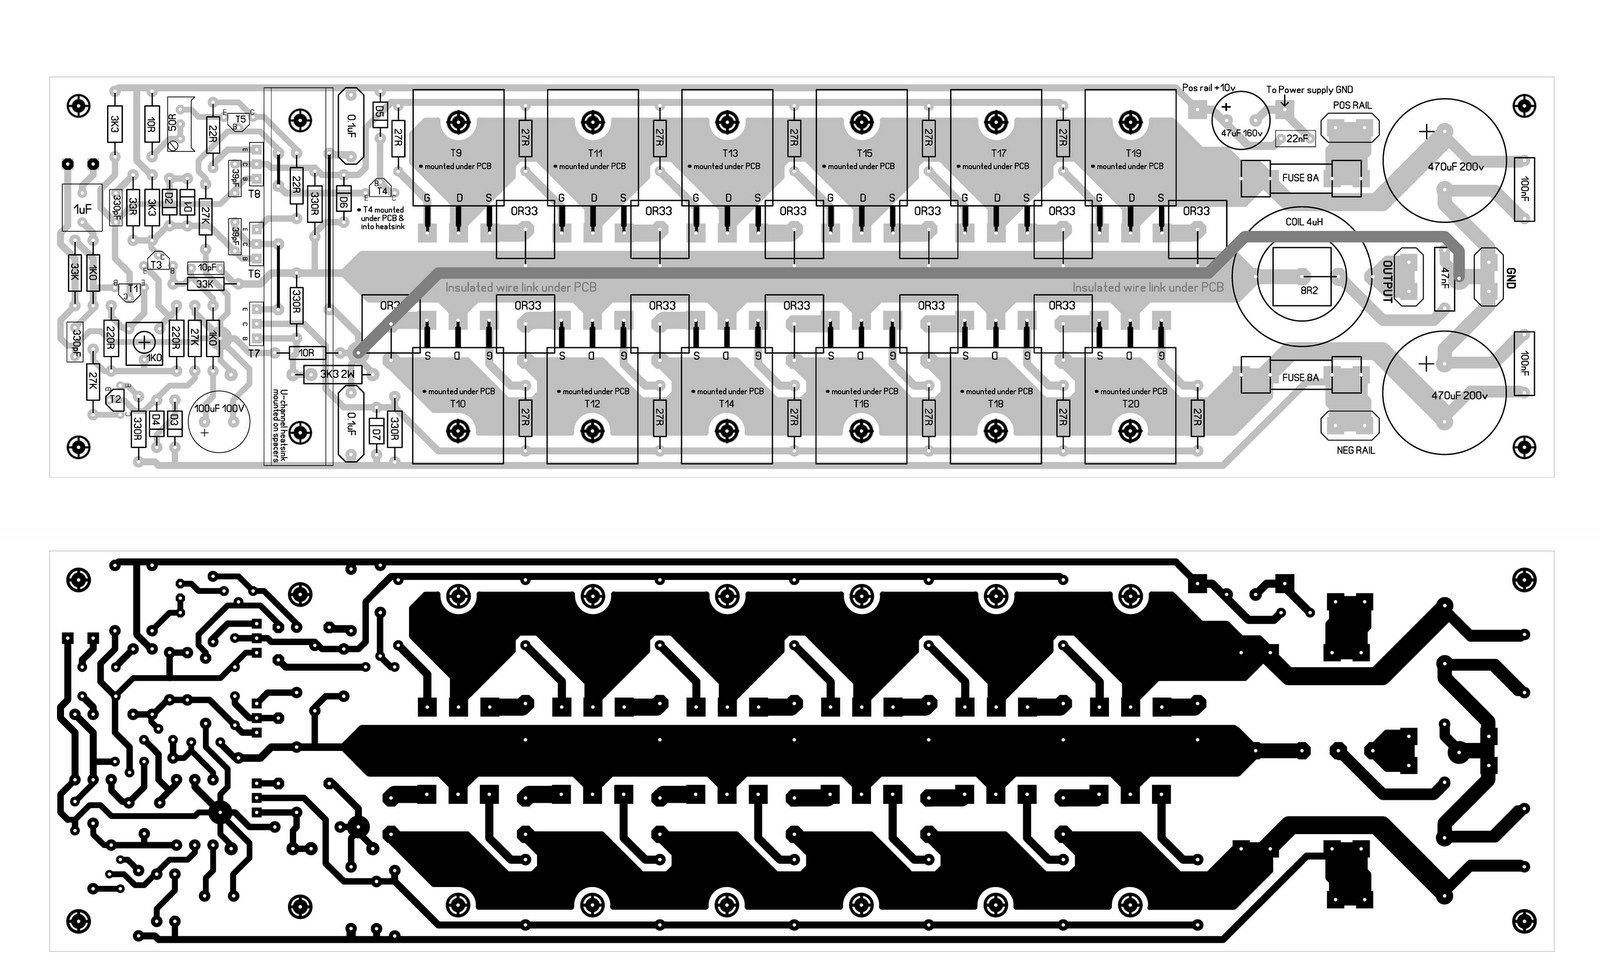 medium resolution of 600w mosfet power amplifier pcb design